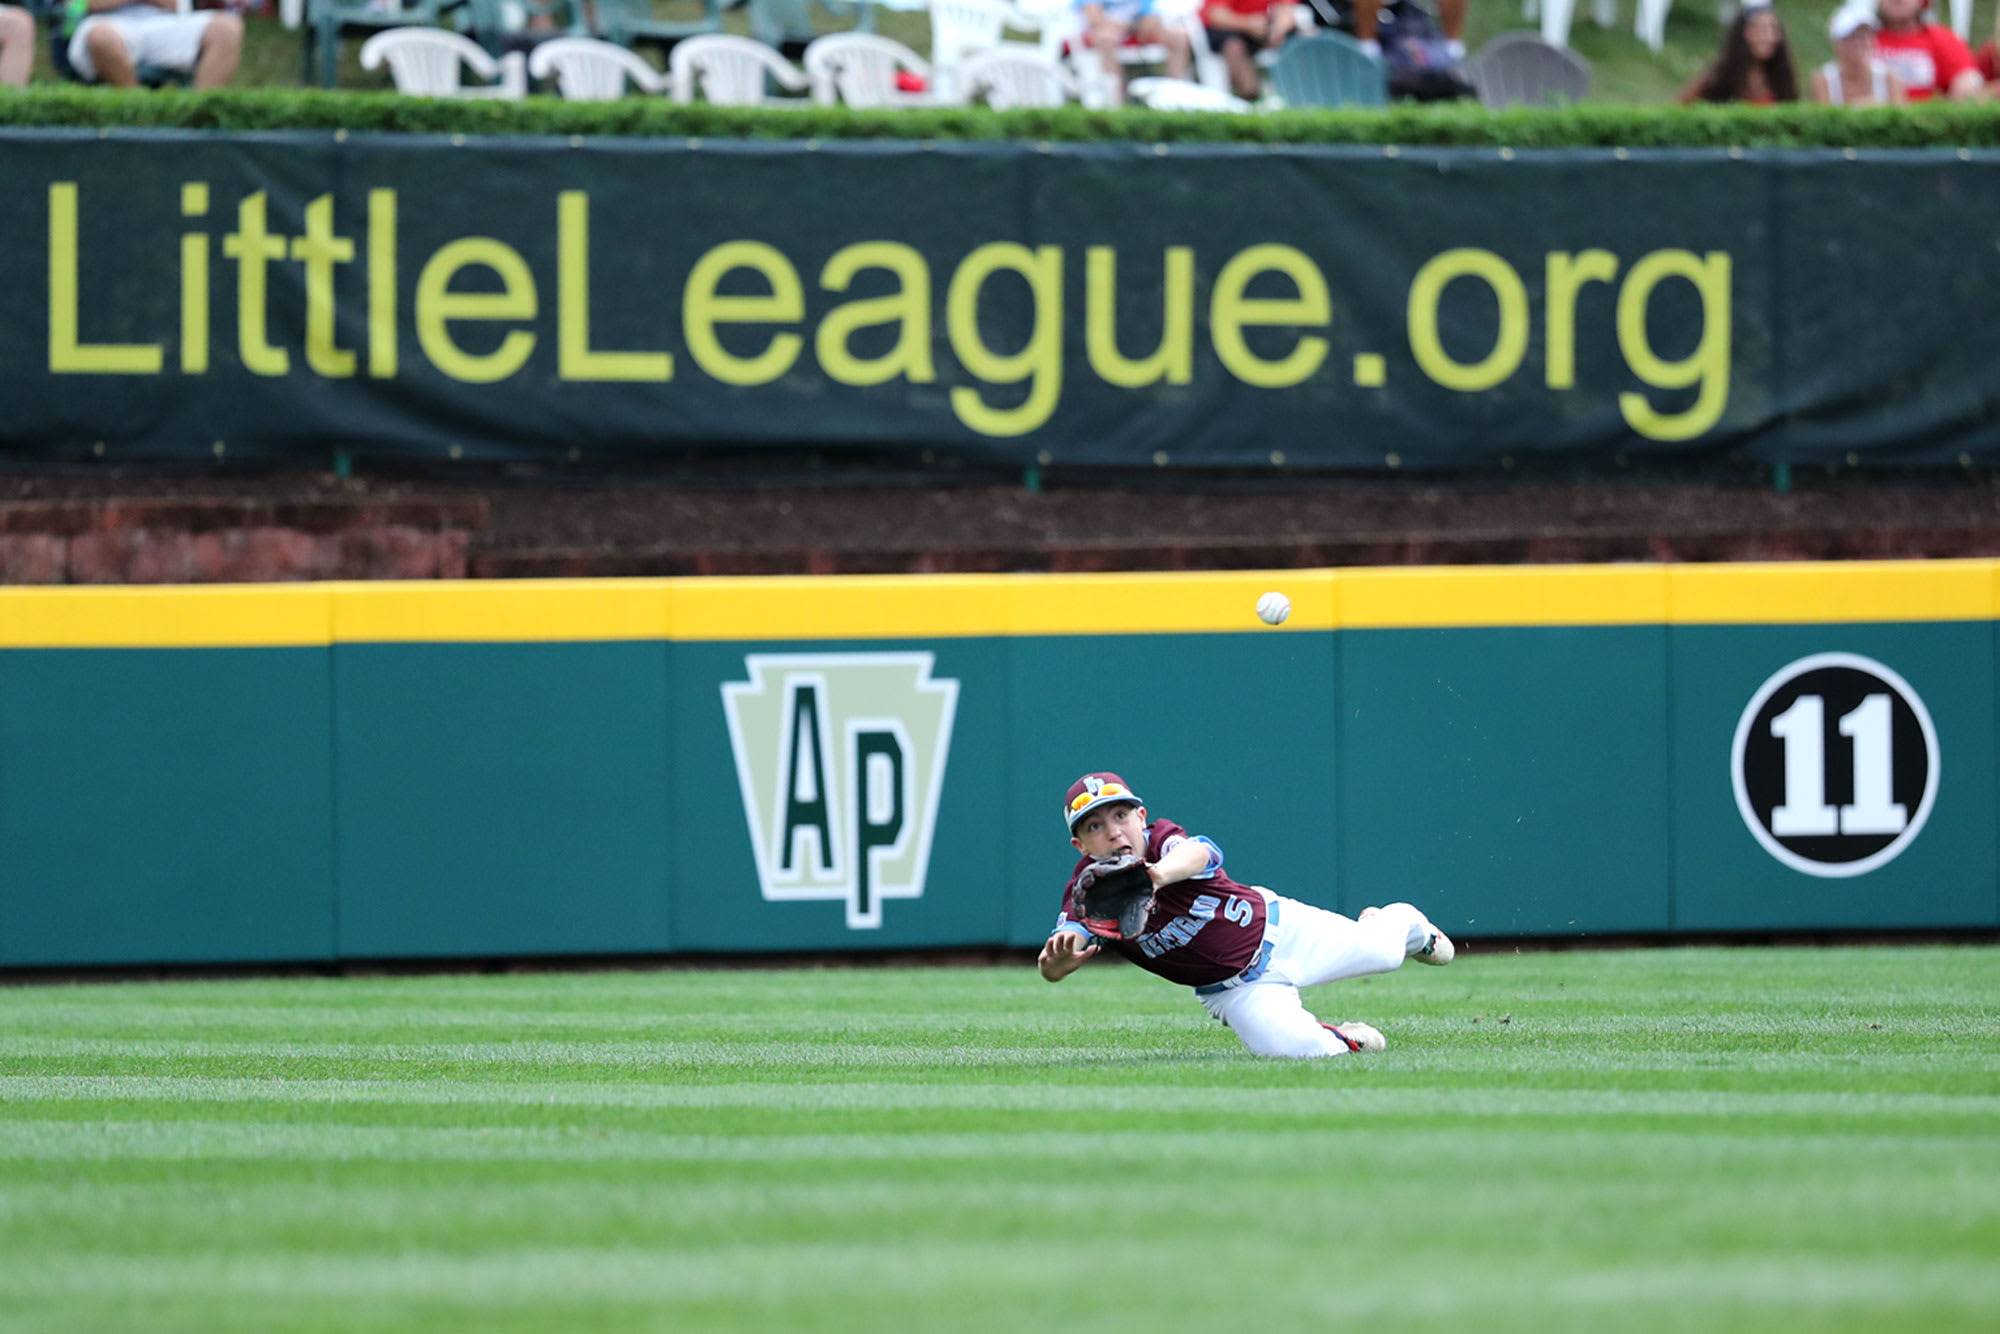 new england outfielder diving catch